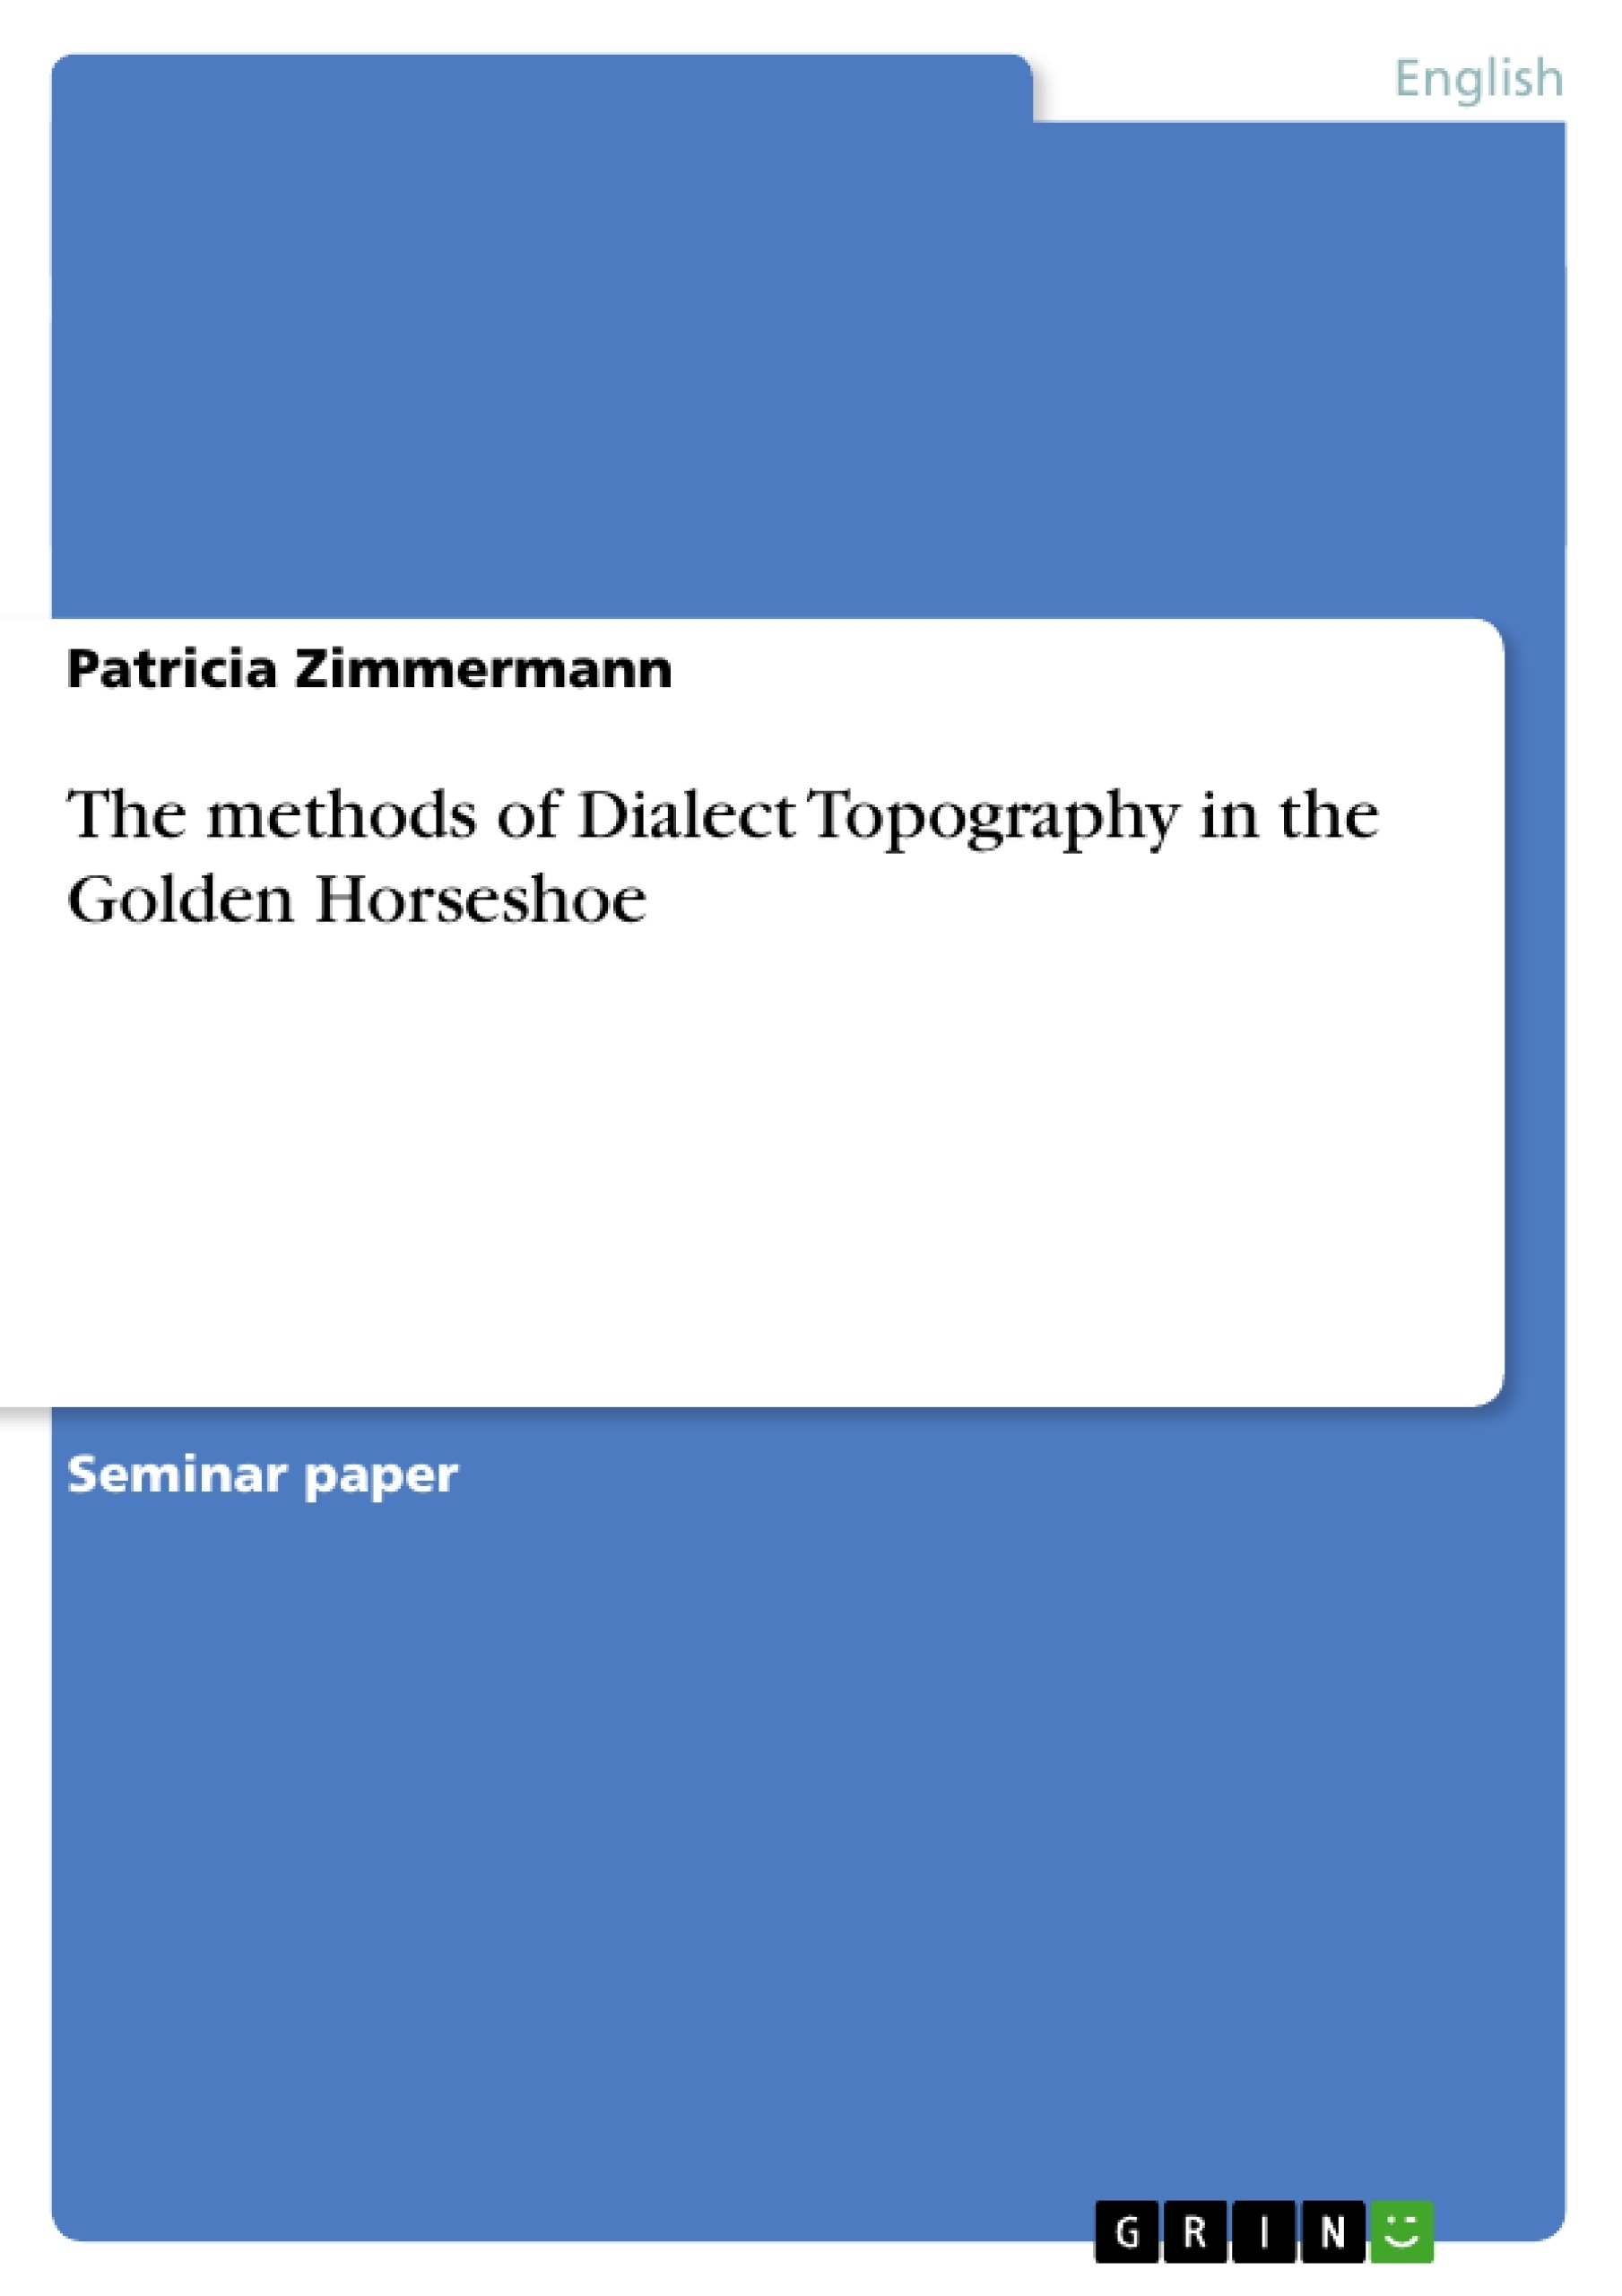 Title: The methods of Dialect Topography in the Golden Horseshoe